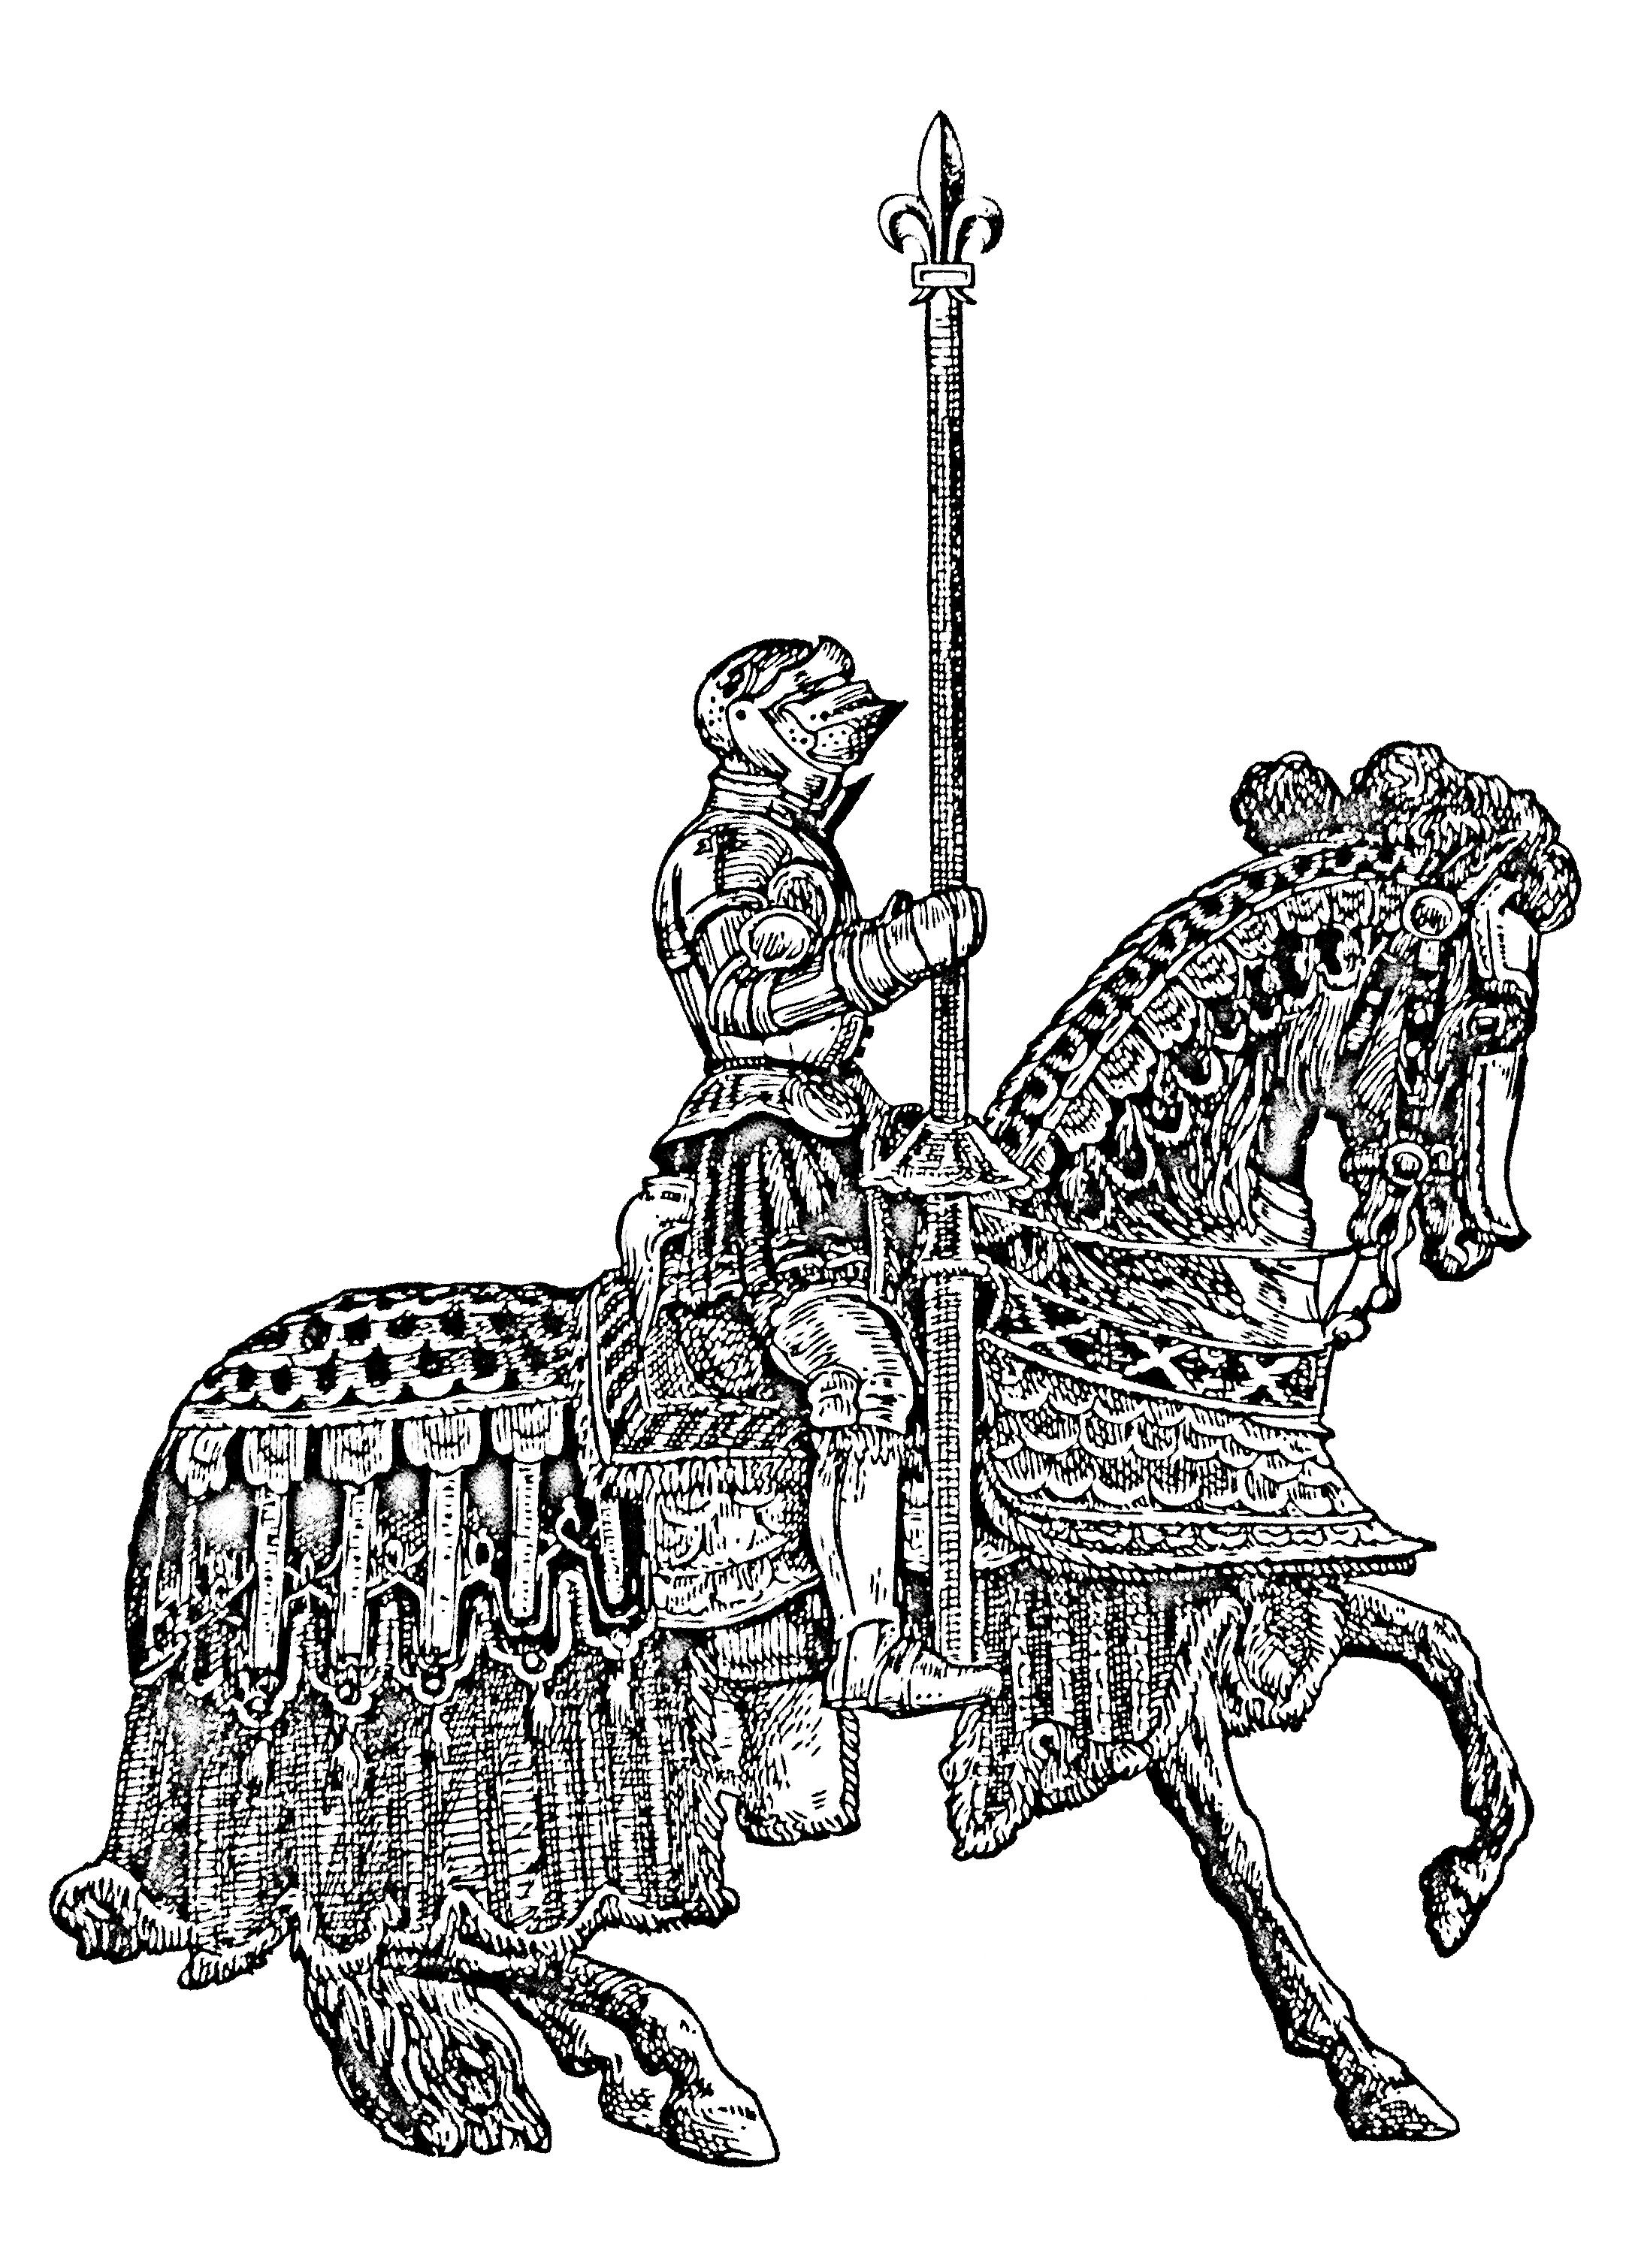 knight on horse coloring page knight rider coloring pages coloring home coloring knight horse page on